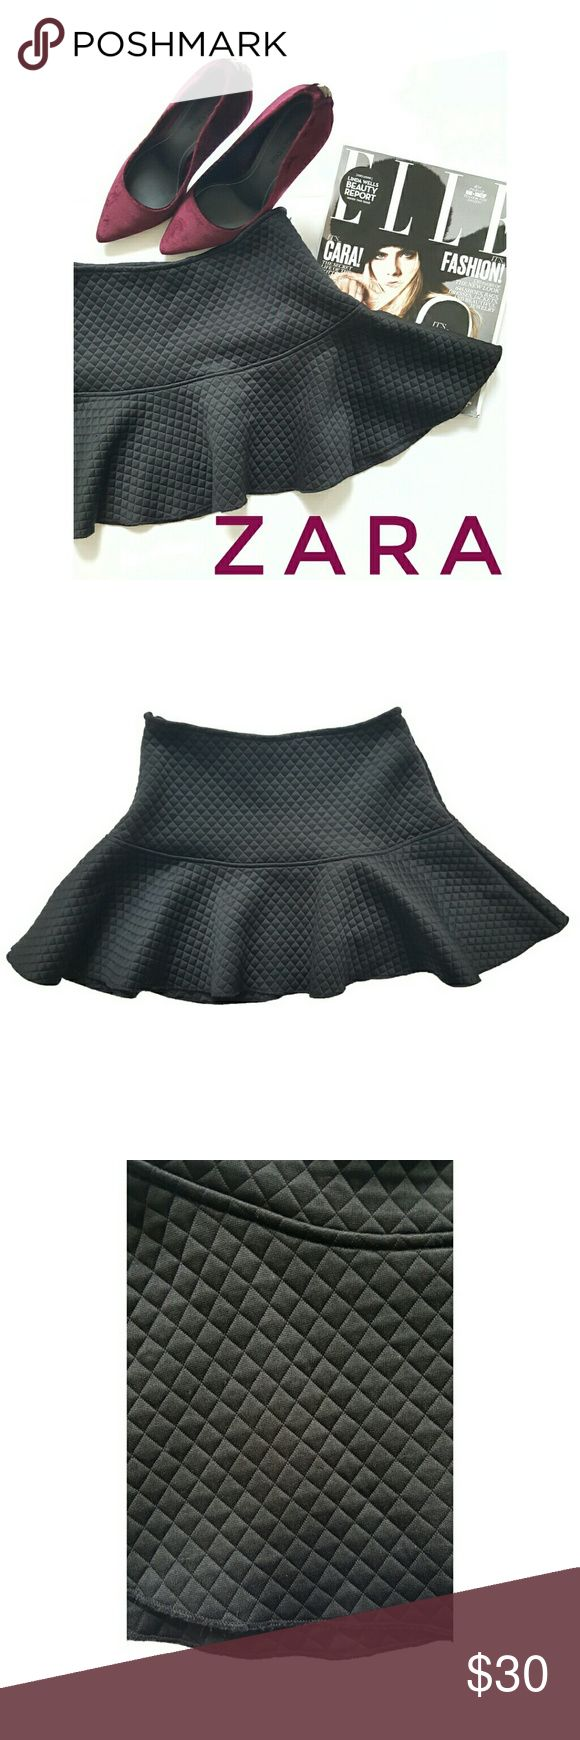 """Zara Black Mini Flare Skirt Zara W&B Collection Black Mini Flare Skirt. Has some minor pilling throughout but still in good condition. See detailed pictures. This mini skirt goes great with a nice blouse and heels!  Size: S  Waist: 24"""" Length: 12 1/2"""" Zara Skirts Mini"""